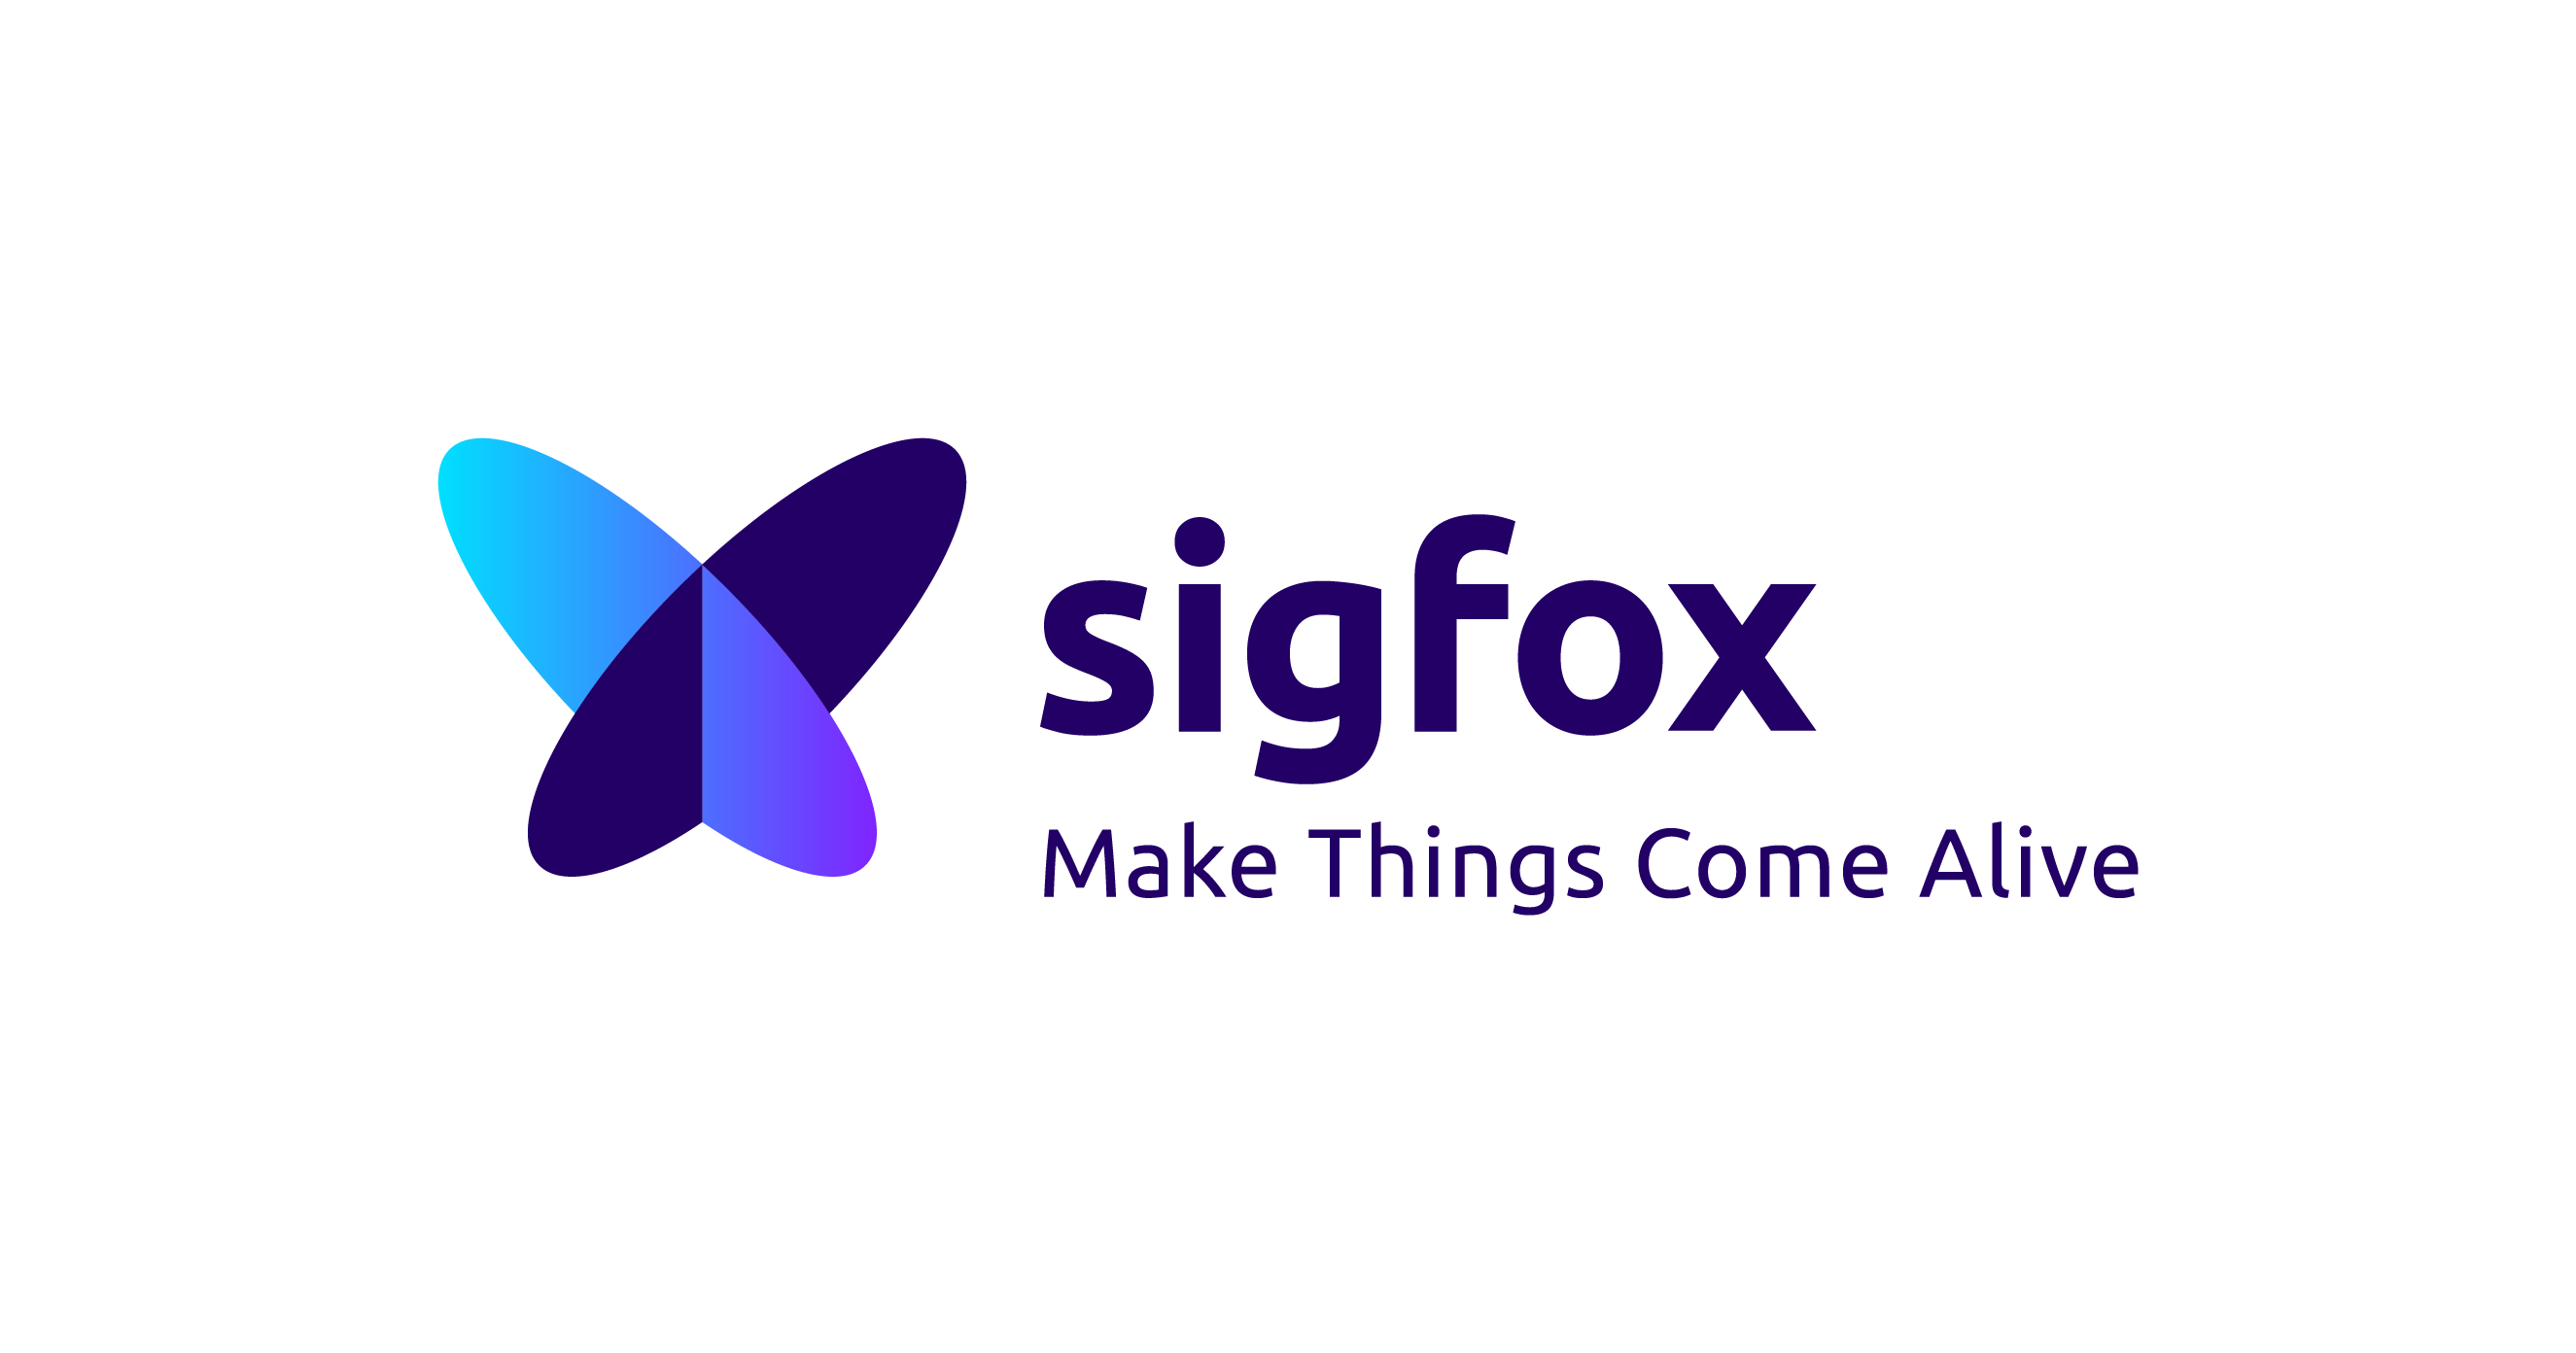 Exosite and Sigfox Partner to Launch Sigfox Service Integration